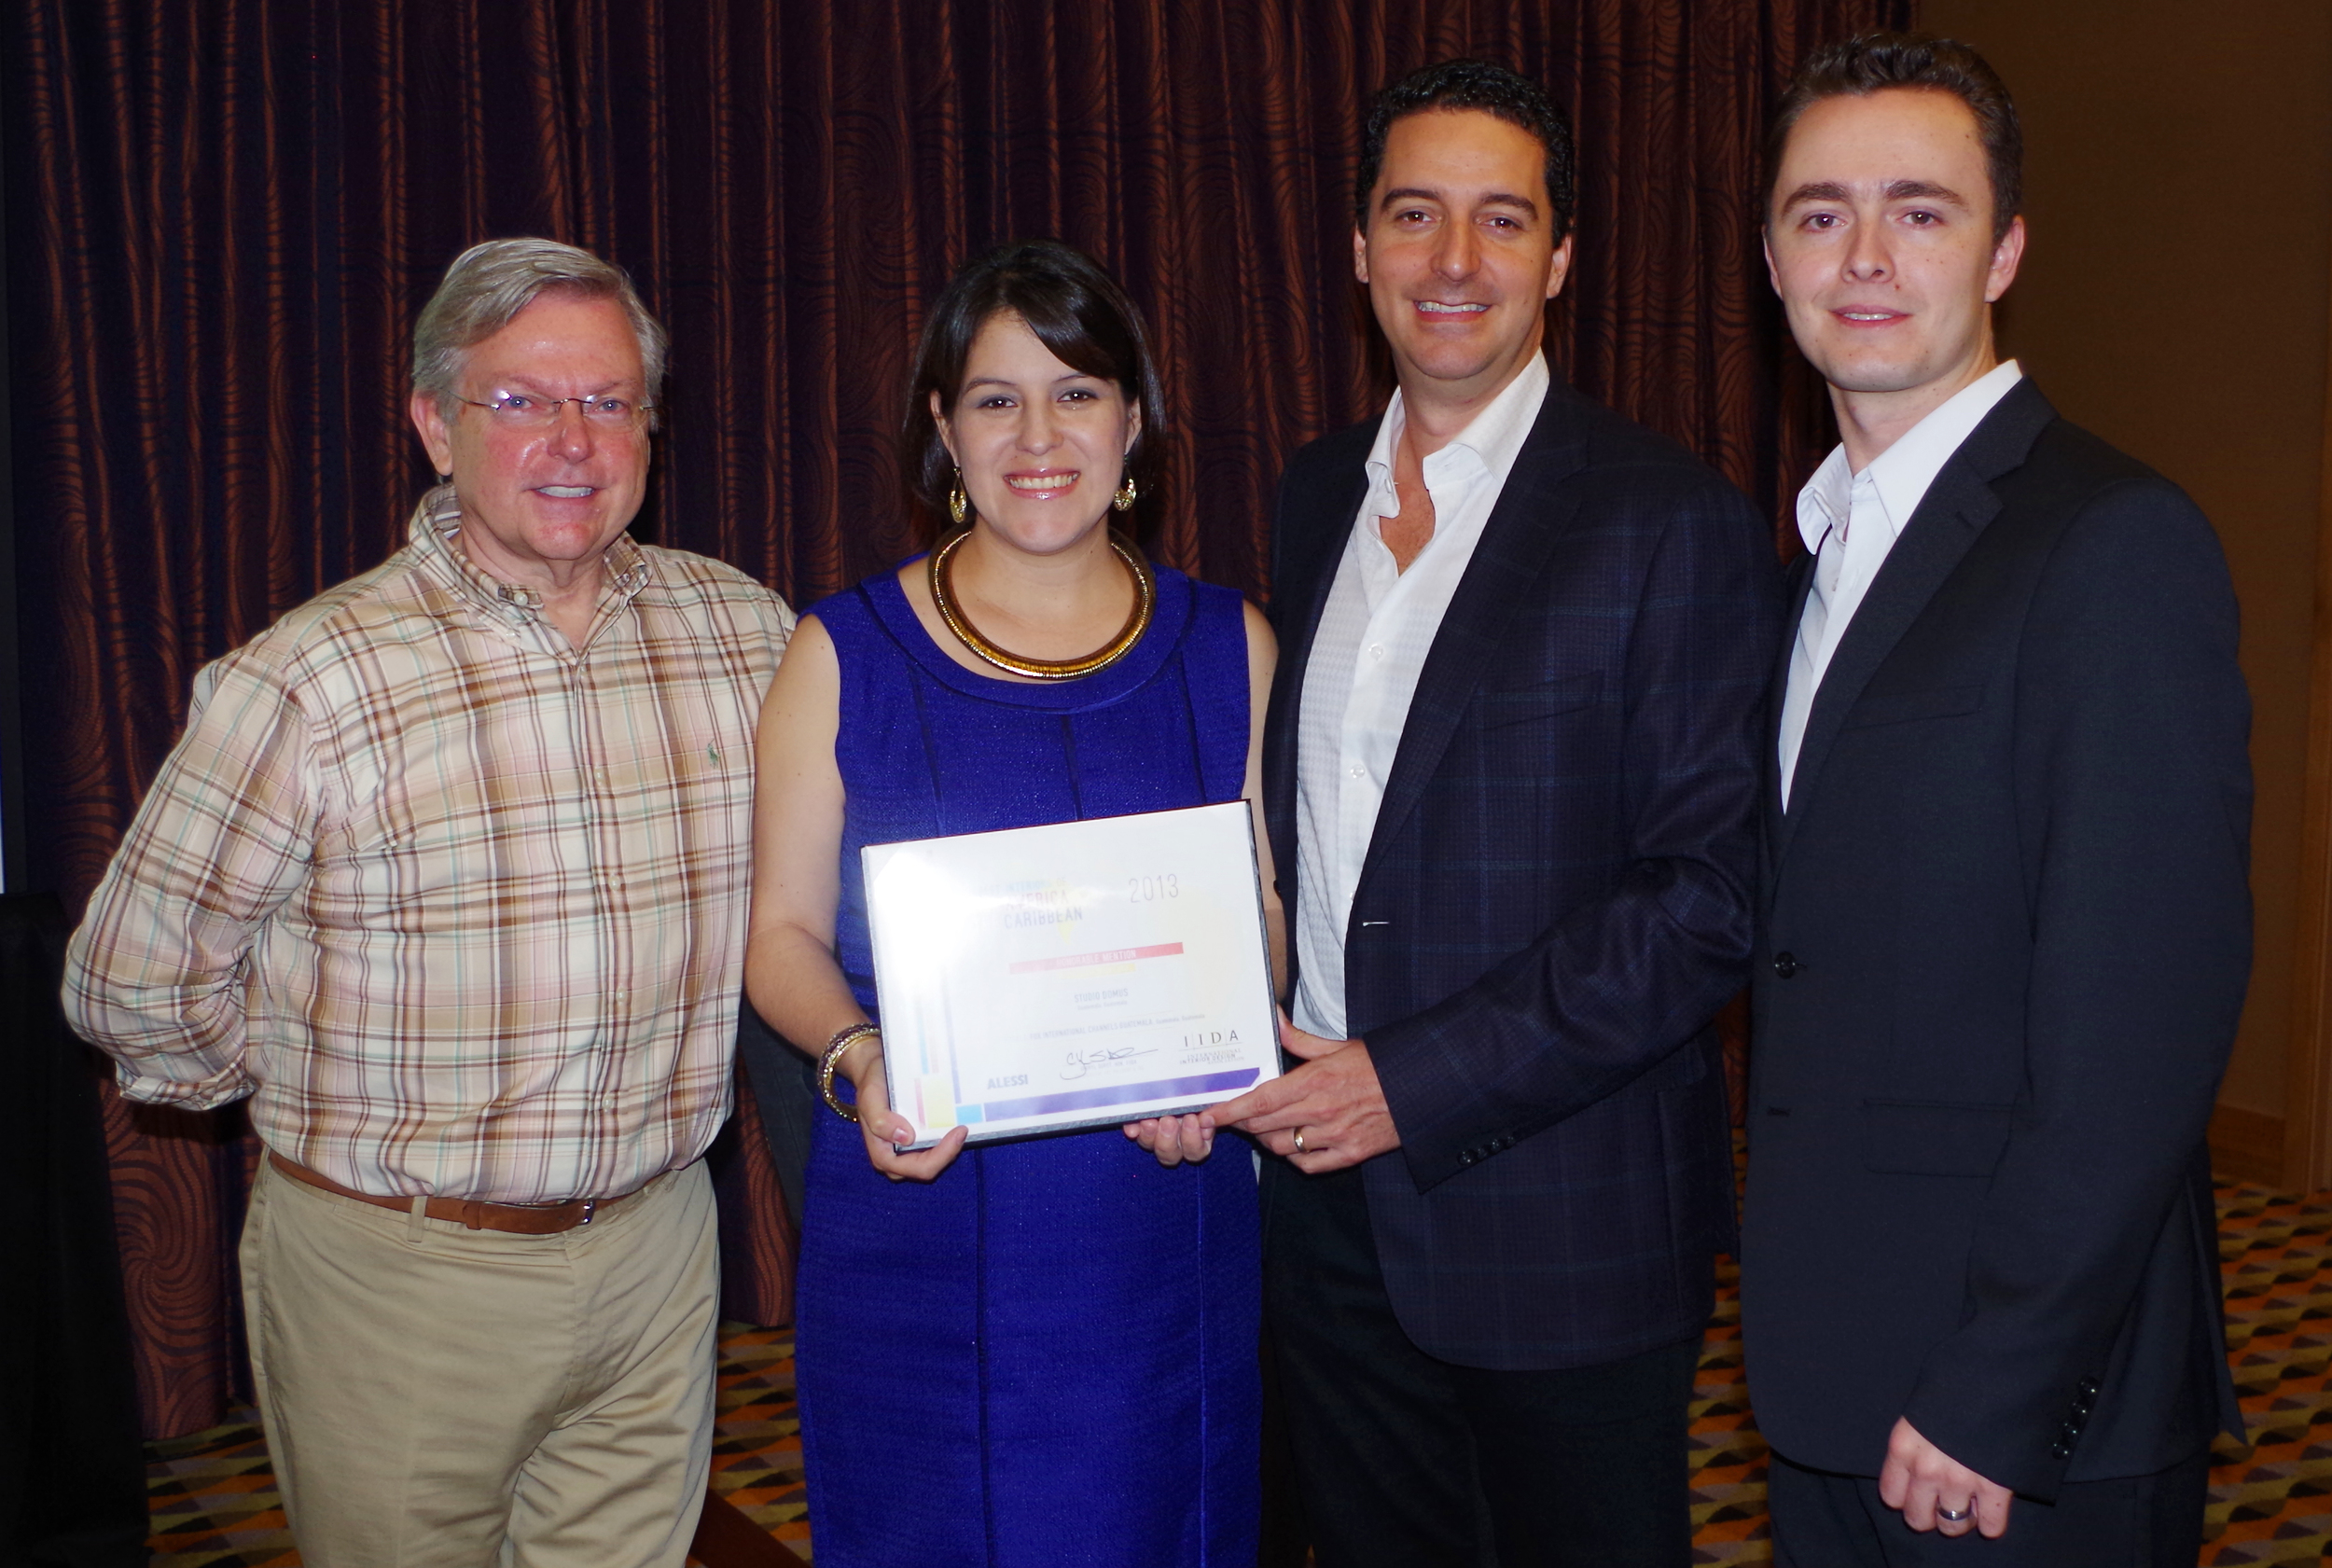 Ana Lucia, Mauricio and Jose Pablo collect the certificate withDennis Krause Senior Vice President IIDA